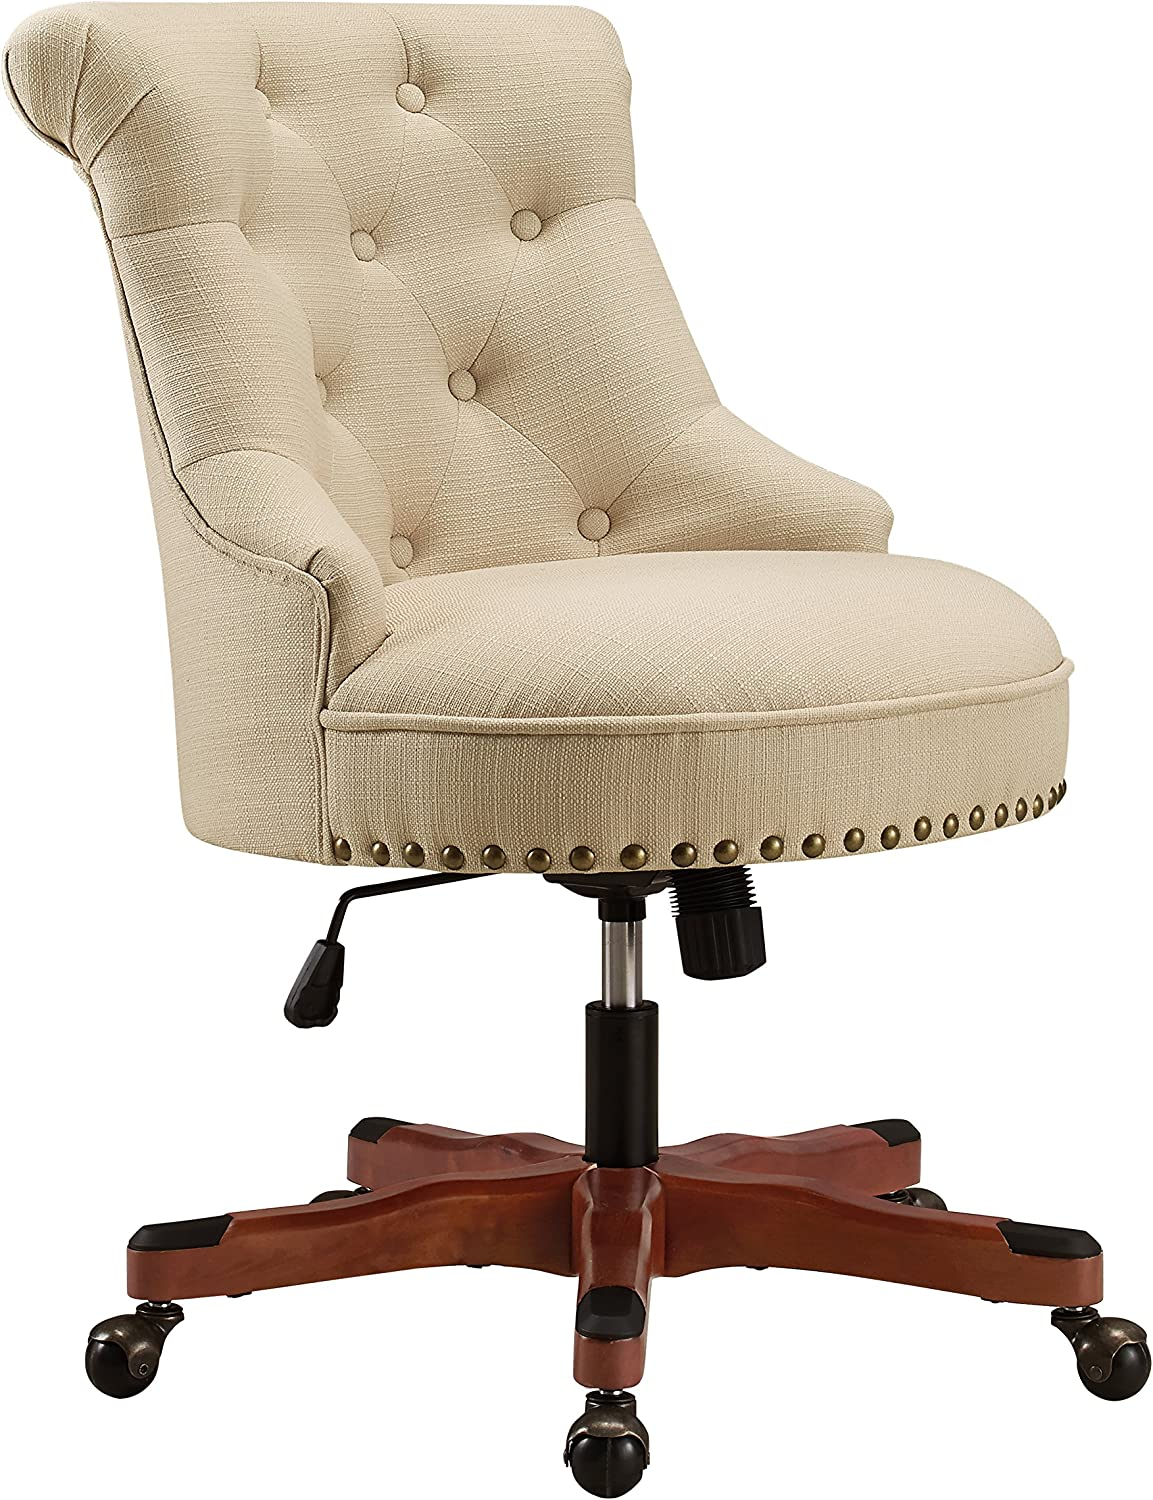 Linon Home Décor Leslie Beige Office Chair